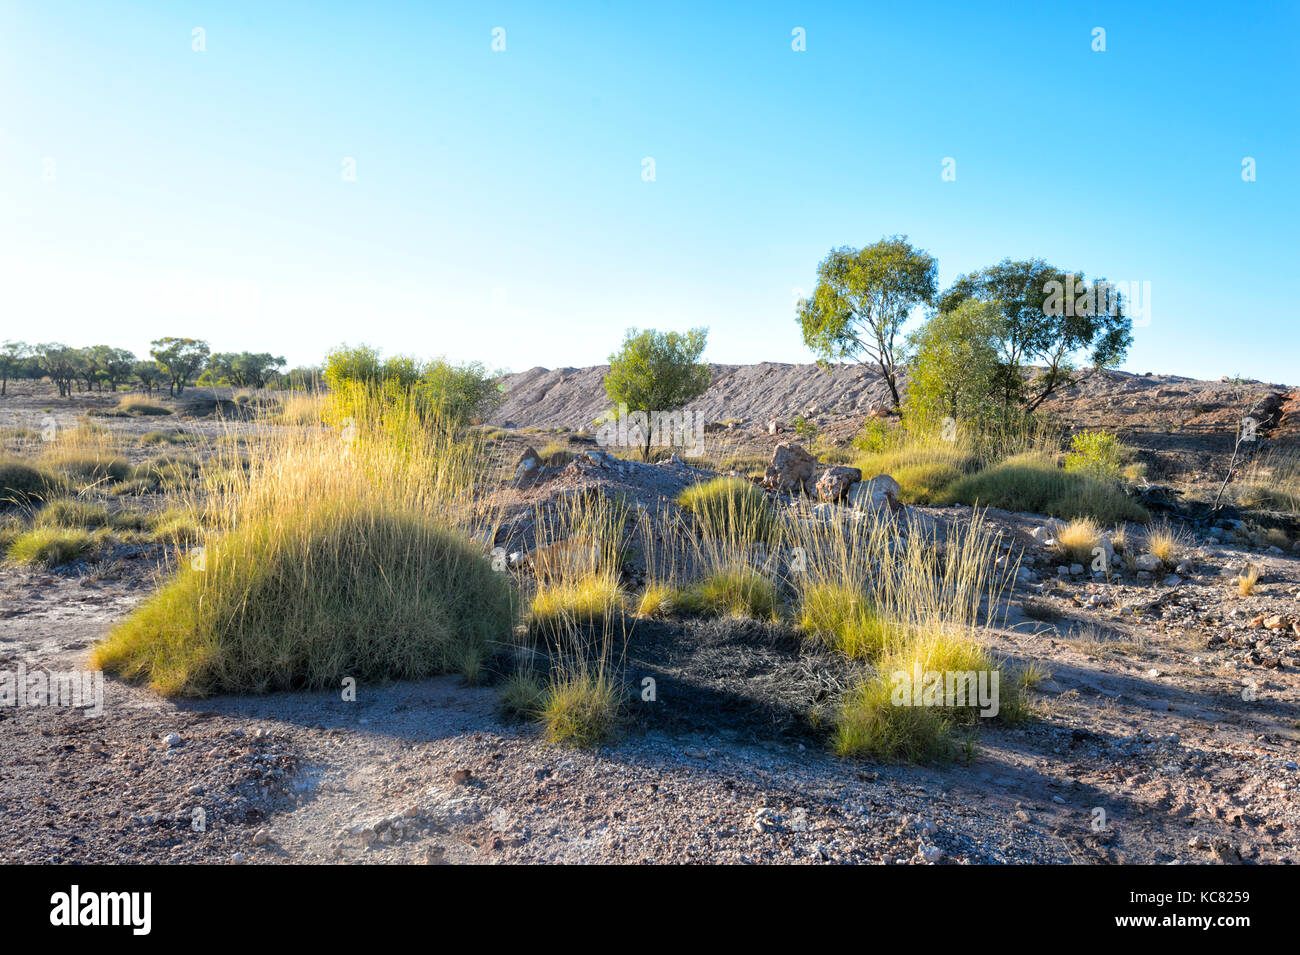 Spinifex in the Outback near Winton, Central West Queensland, QLD, Australia - Stock Image